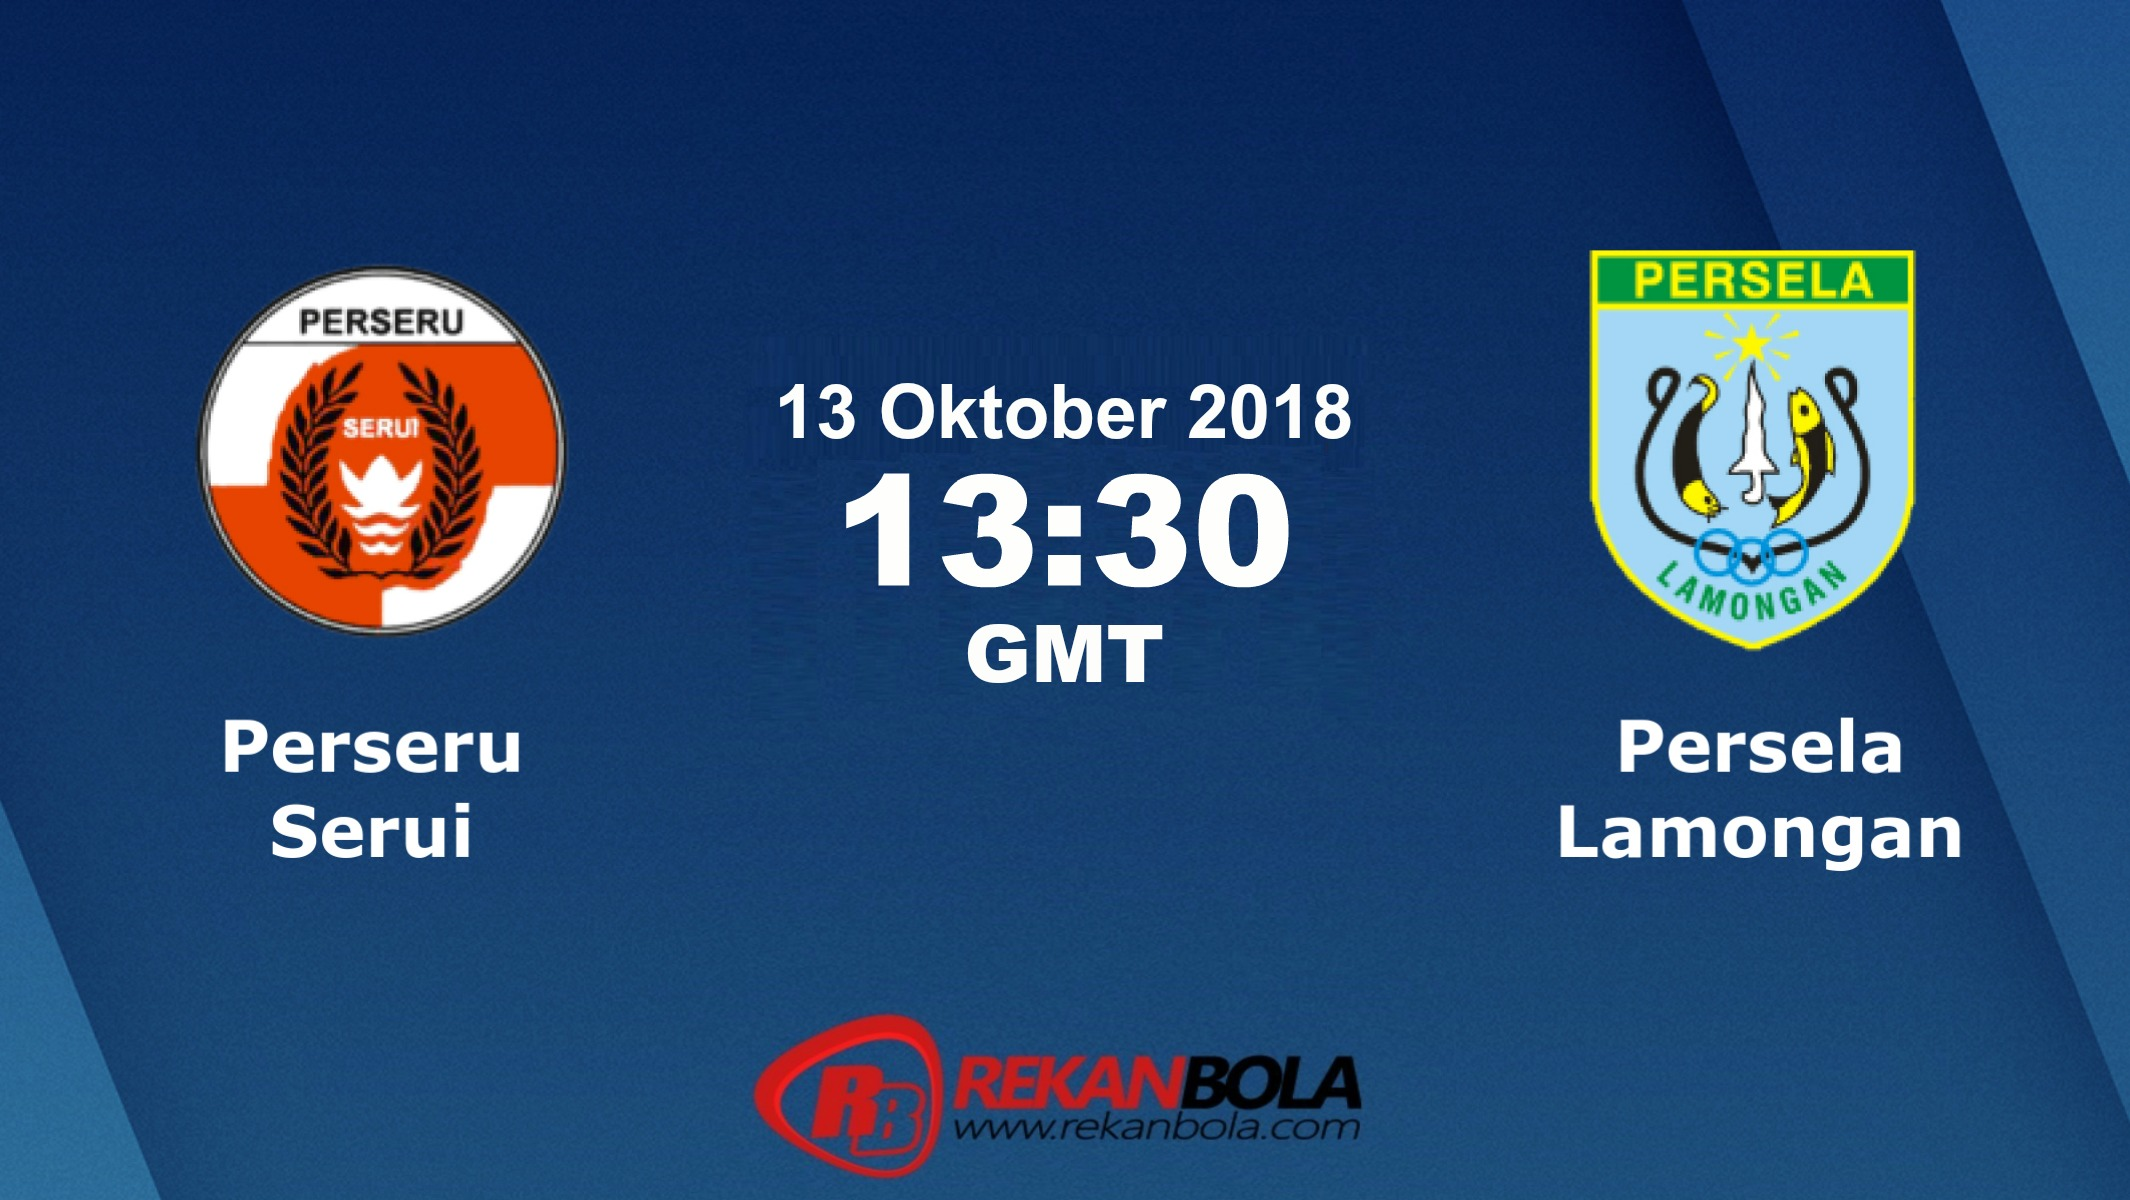 Nonton Siaran Live Streaming Perseru Vs Persela 13 Oktober 2018